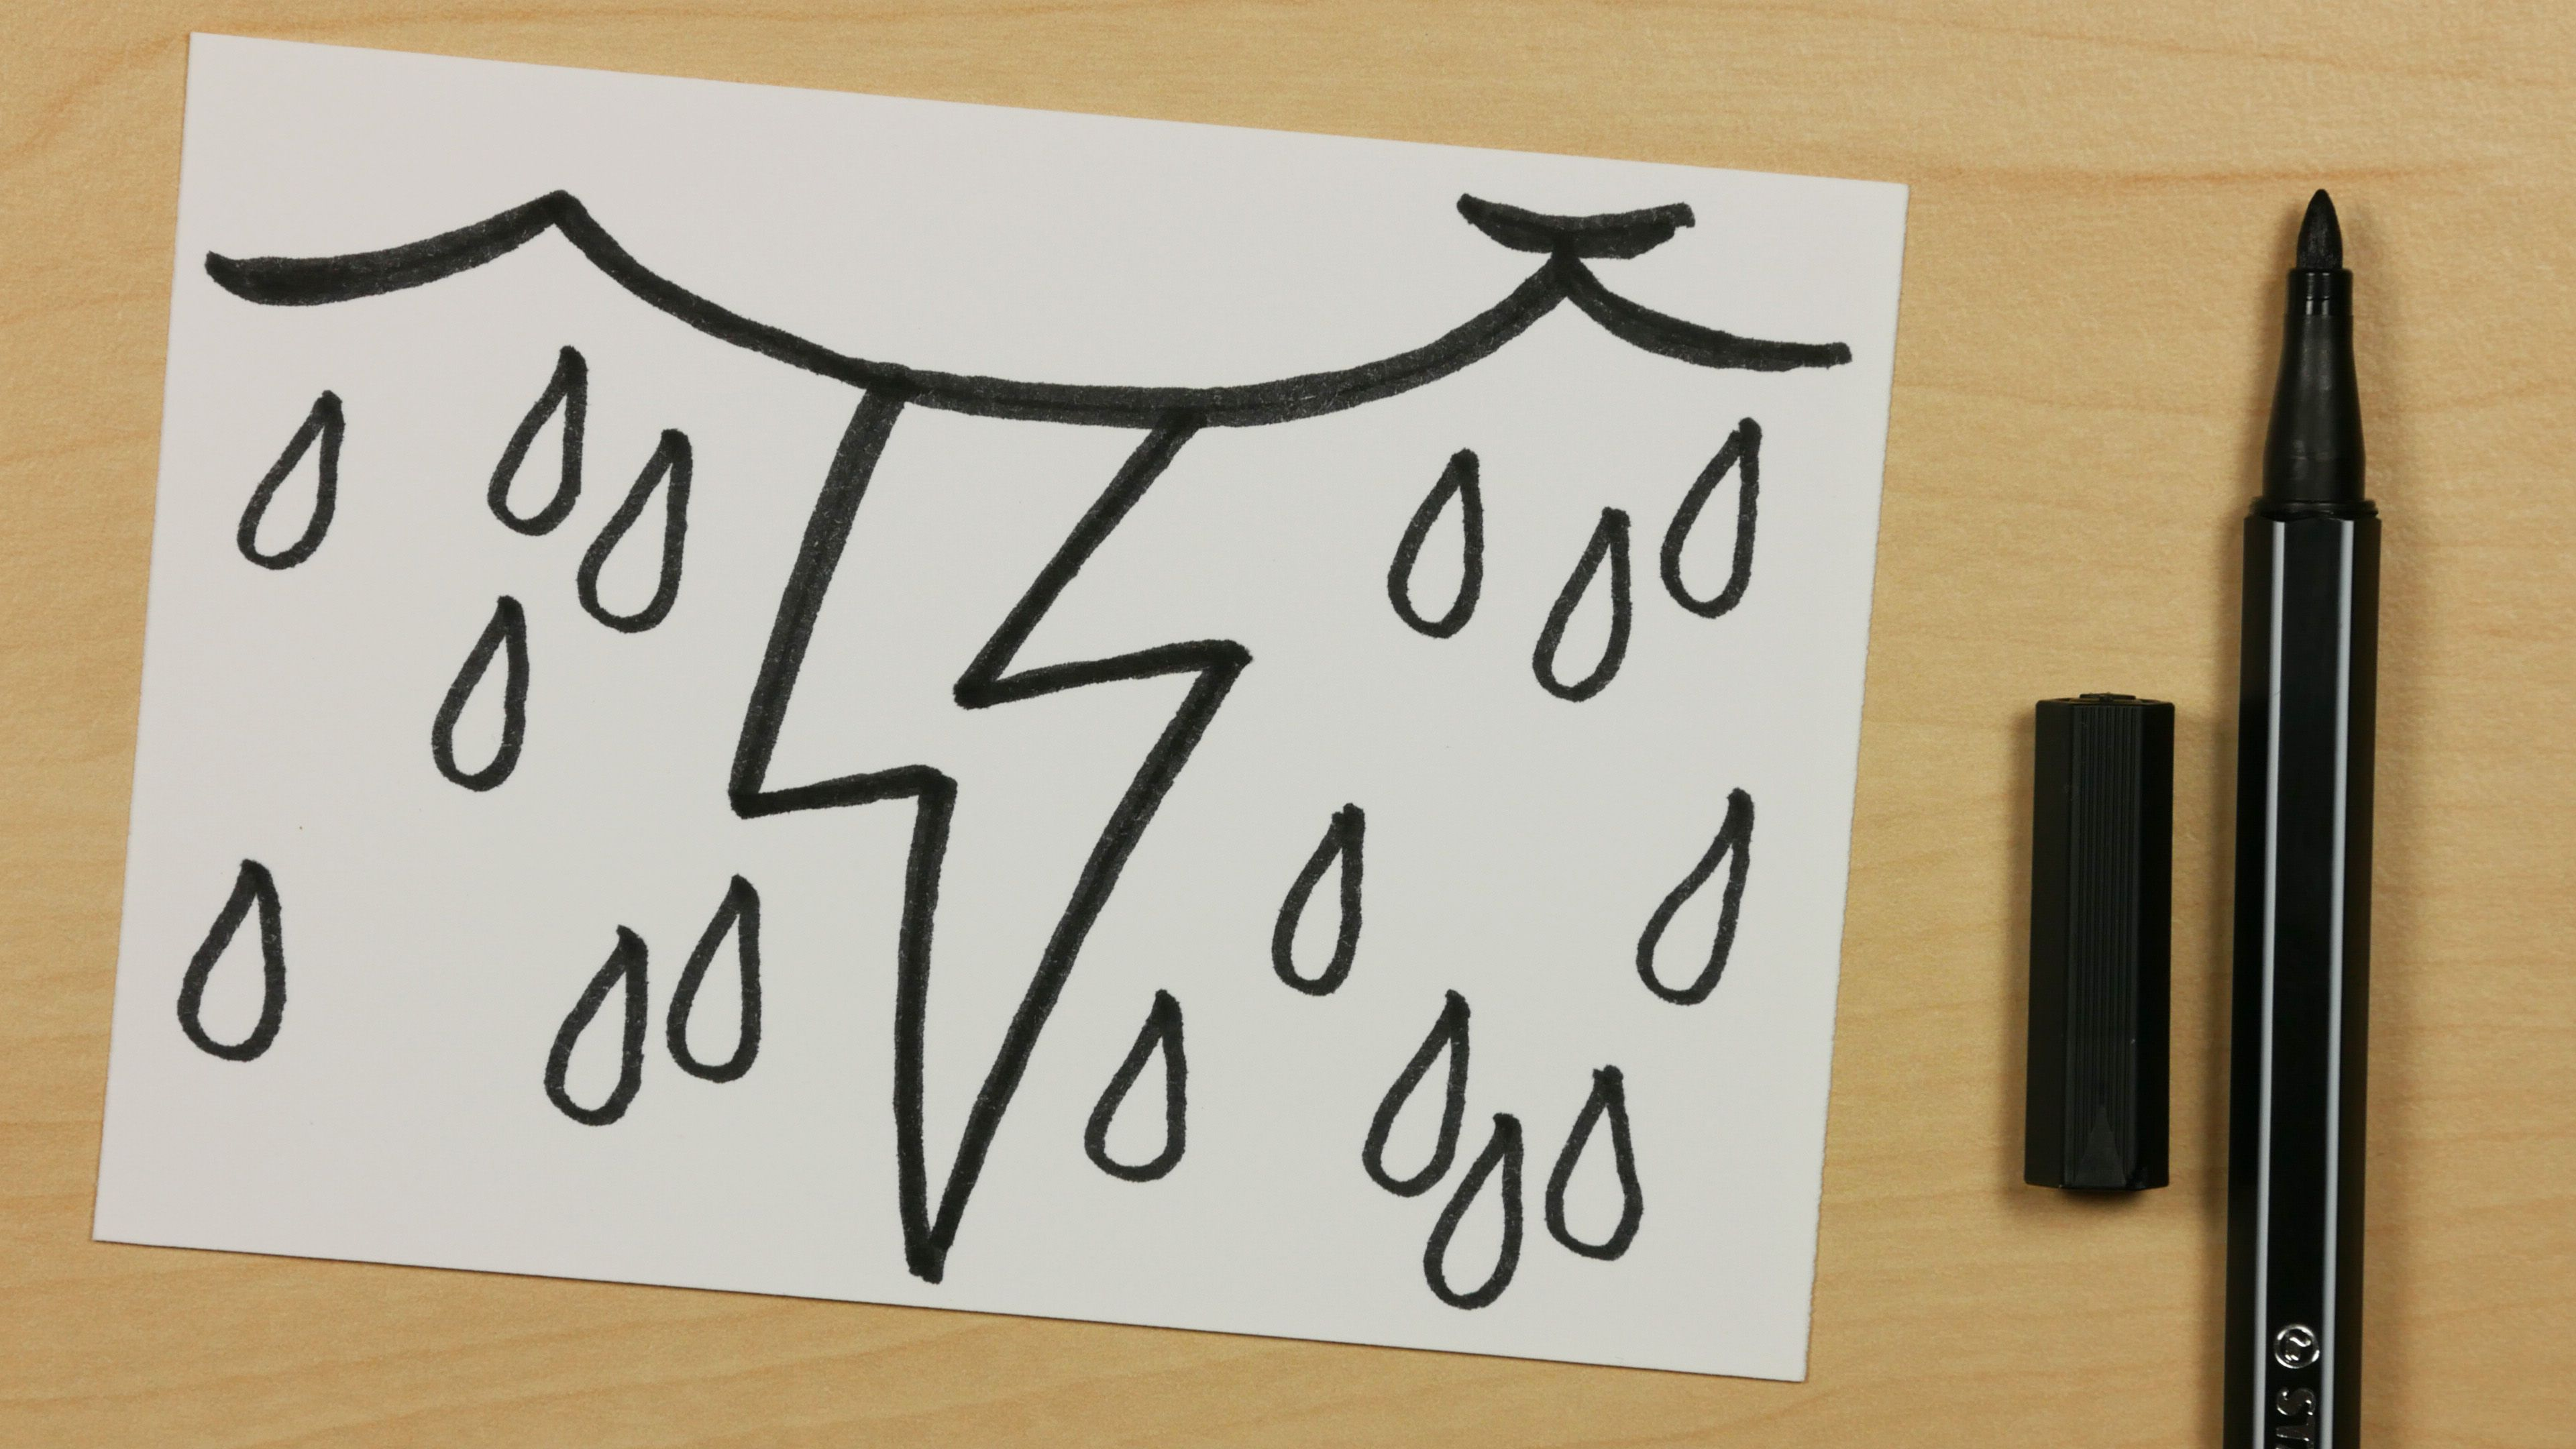 How to Draw a Lightning Bolt with Thundercloud and Rain - Easy Cartoon Doodle for Kids [101] - https://youtu.be/aunlVA1LTpE - Subscribe: https://www.youtube.com/channel/UCzp_6nj33P39unKIBTNvXkQ?sub_confirmation=1